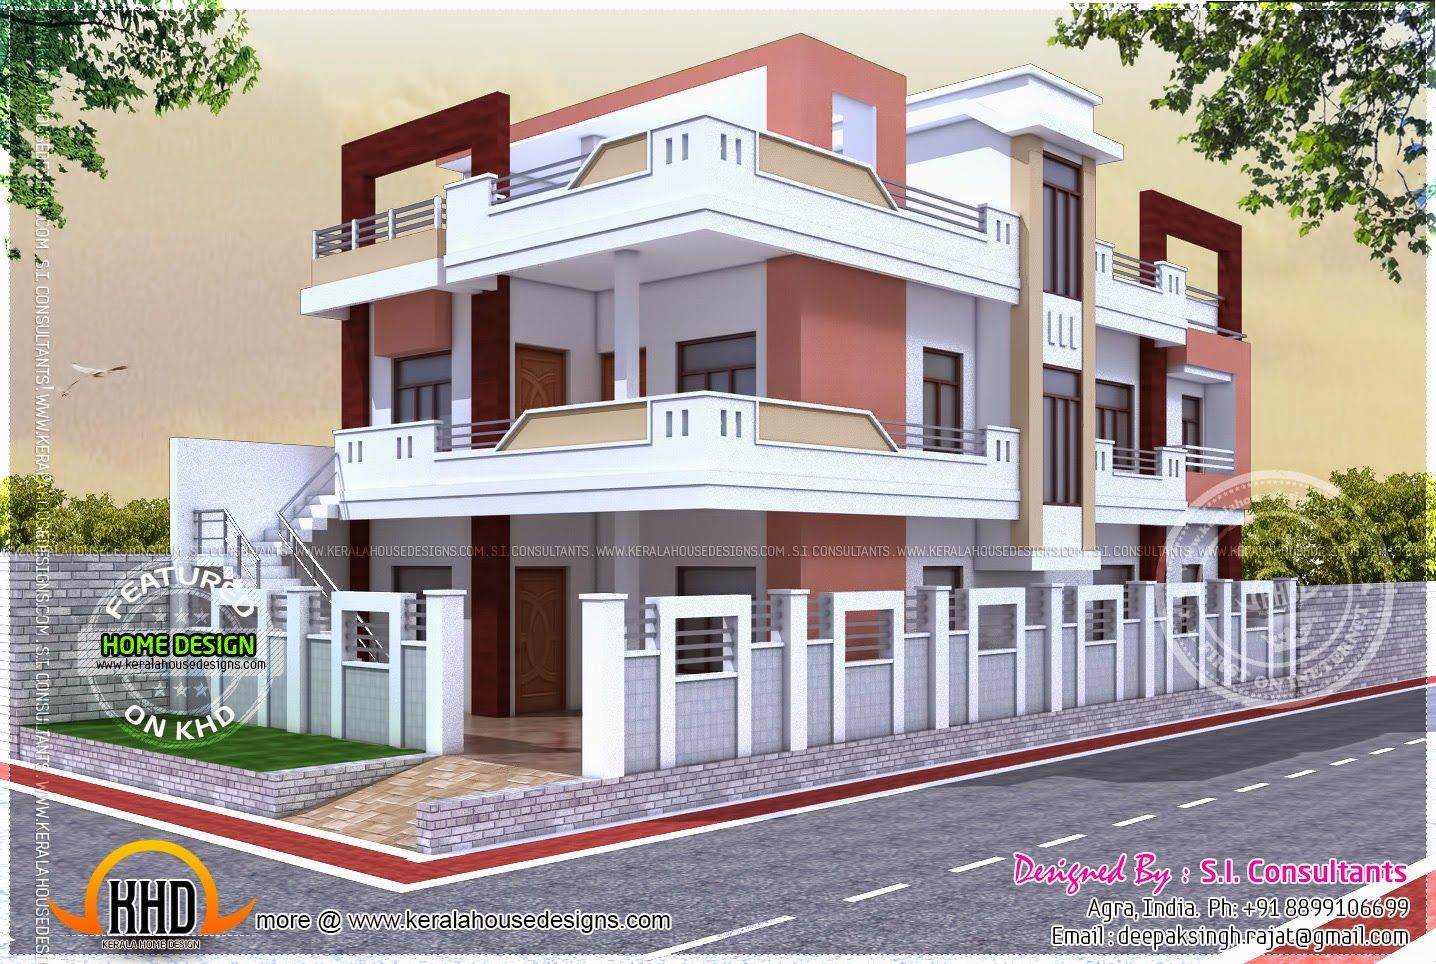 Home Design Plans Indian Style duplex house design plans india gallery construction in indian style simple small lrg ffefcbbff Find This Pin And More On House Elevation Floor Plan Of North Indian House